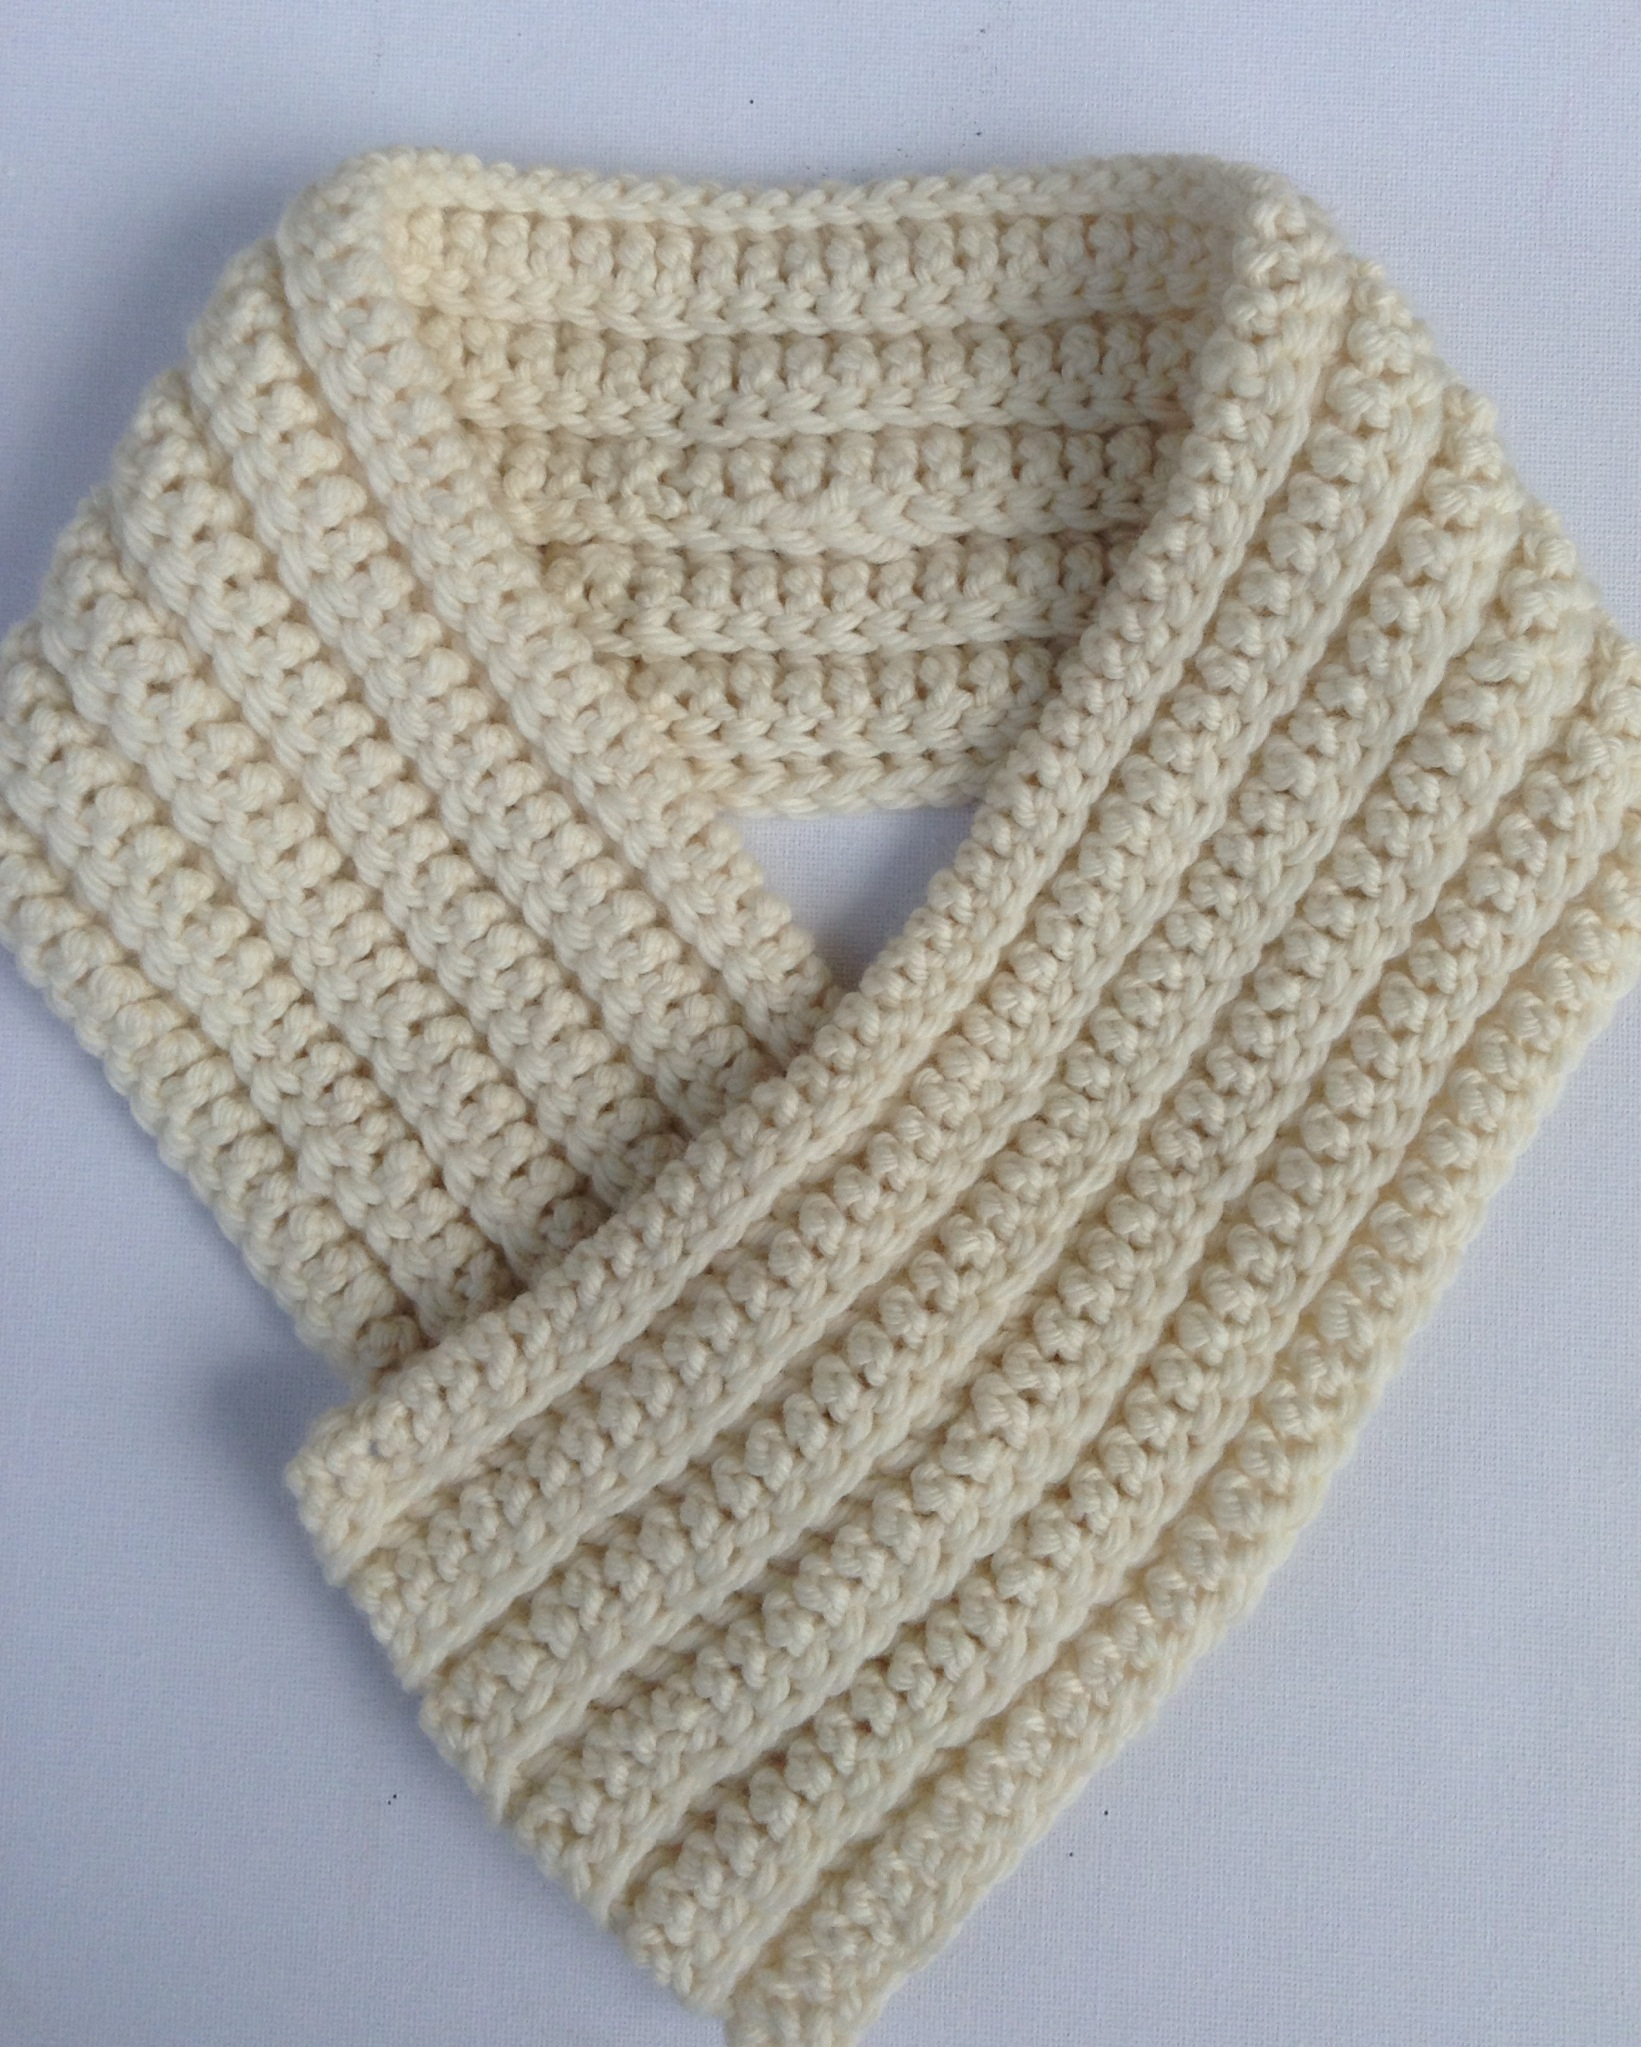 Scarf Crochet Pattern Free to Upgrade Your Winter Style Free Crochet Rib Scarf Pattern Uk Terms